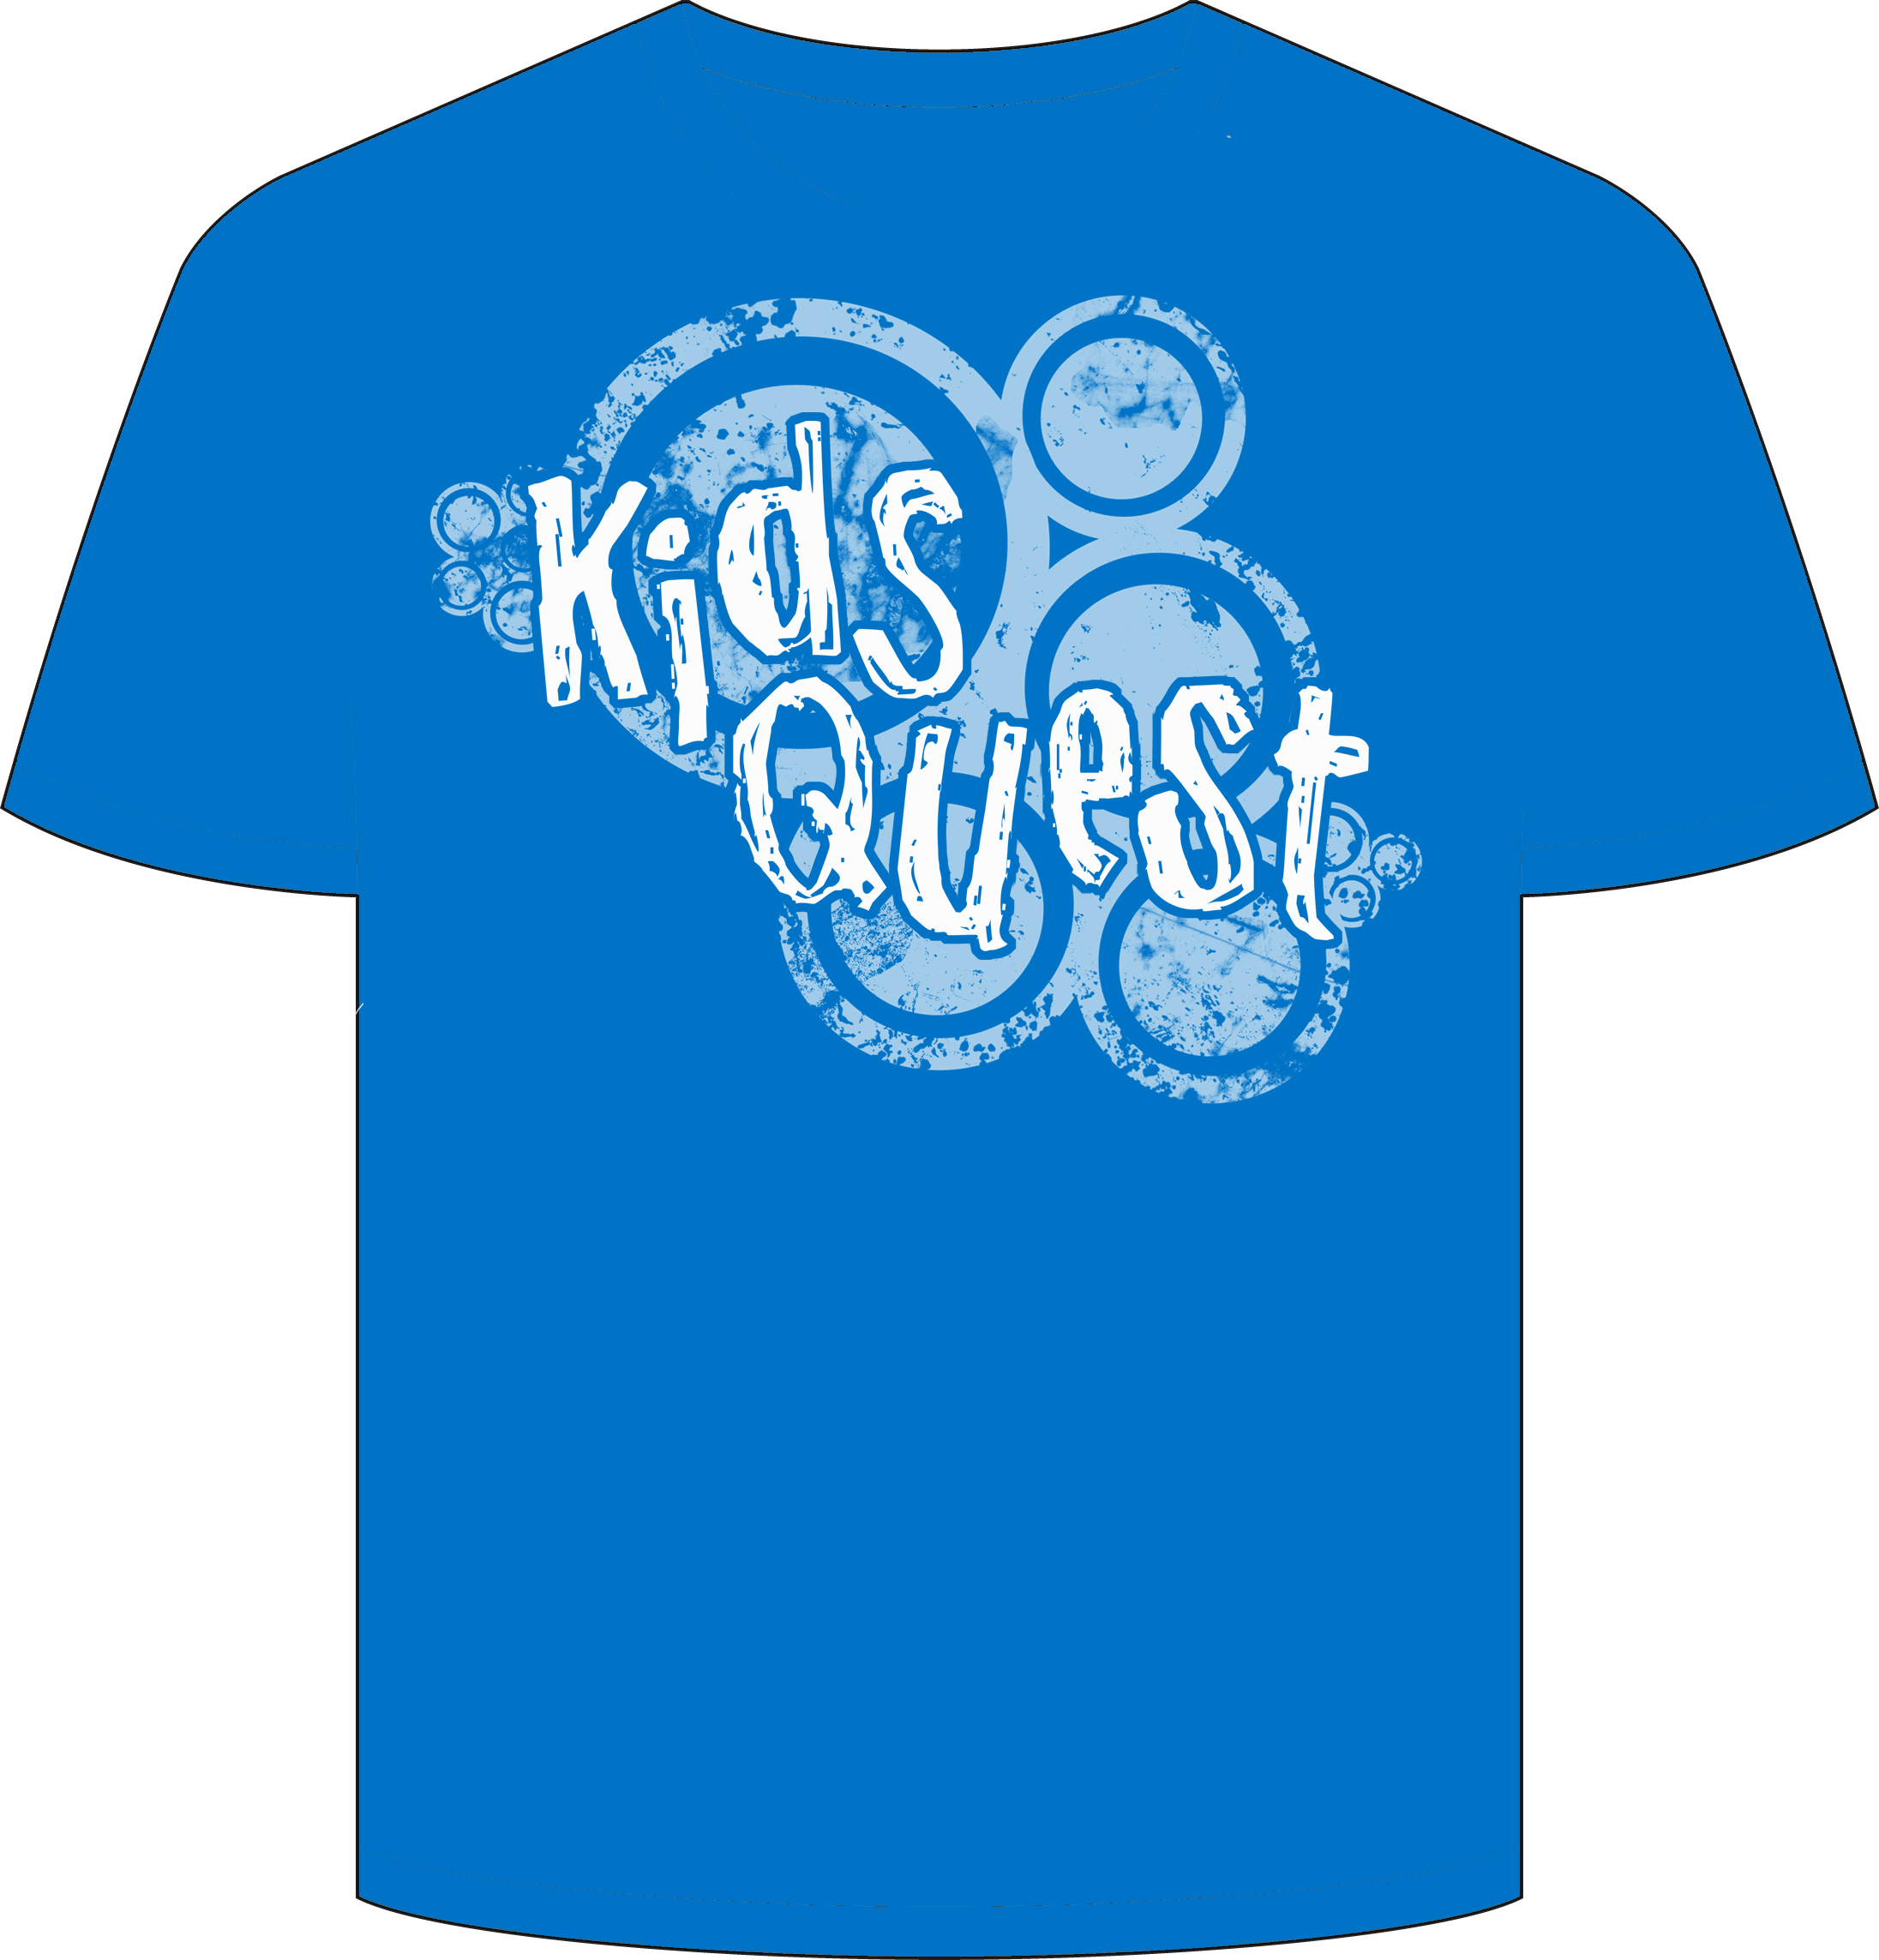 New Kids Quest T Shirt Design Childrens Ministry Online